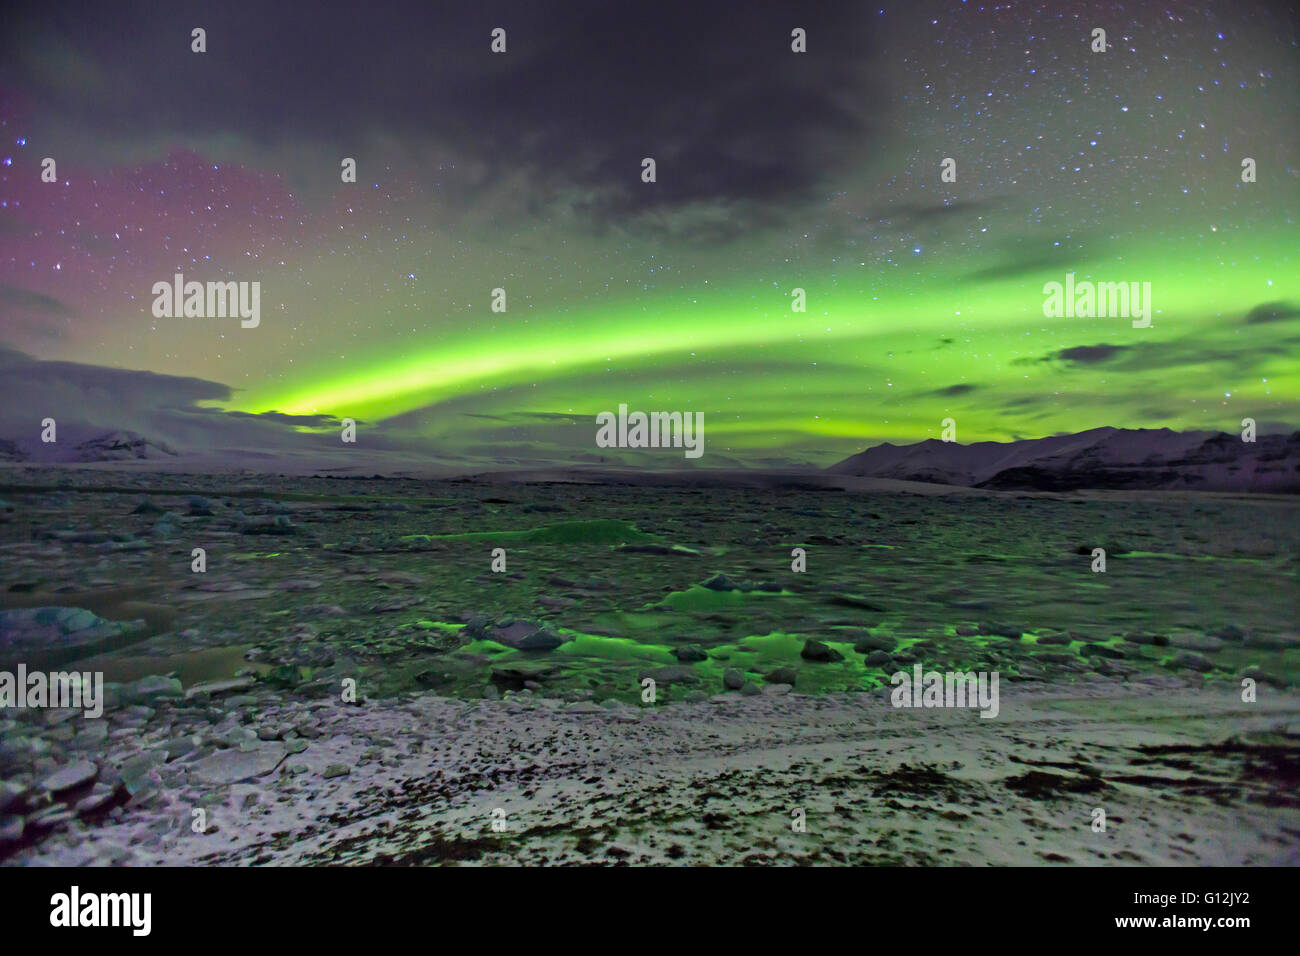 Northern Lights over Joekulsarlon Glacial River Lagoon, Aurora Borealis, Vatnajoekull National Park, Iceland - Stock Image